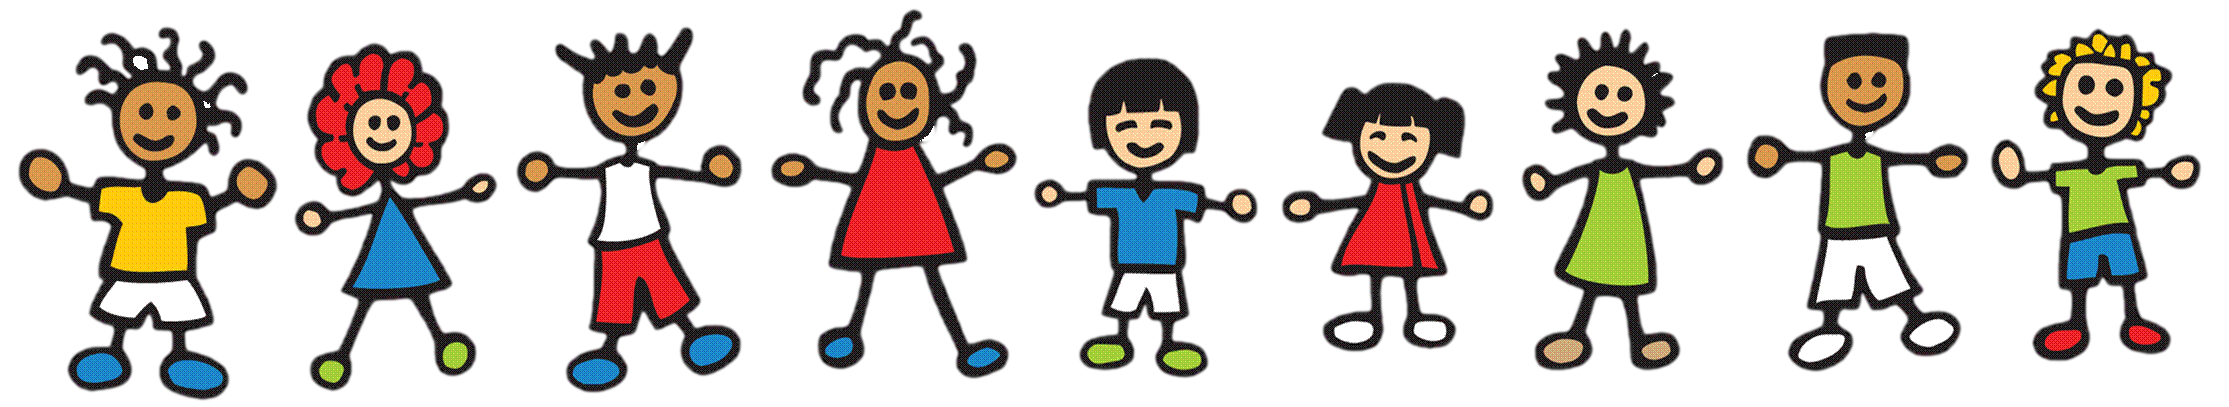 Gaming clipart cartoon kid. Free game for kids